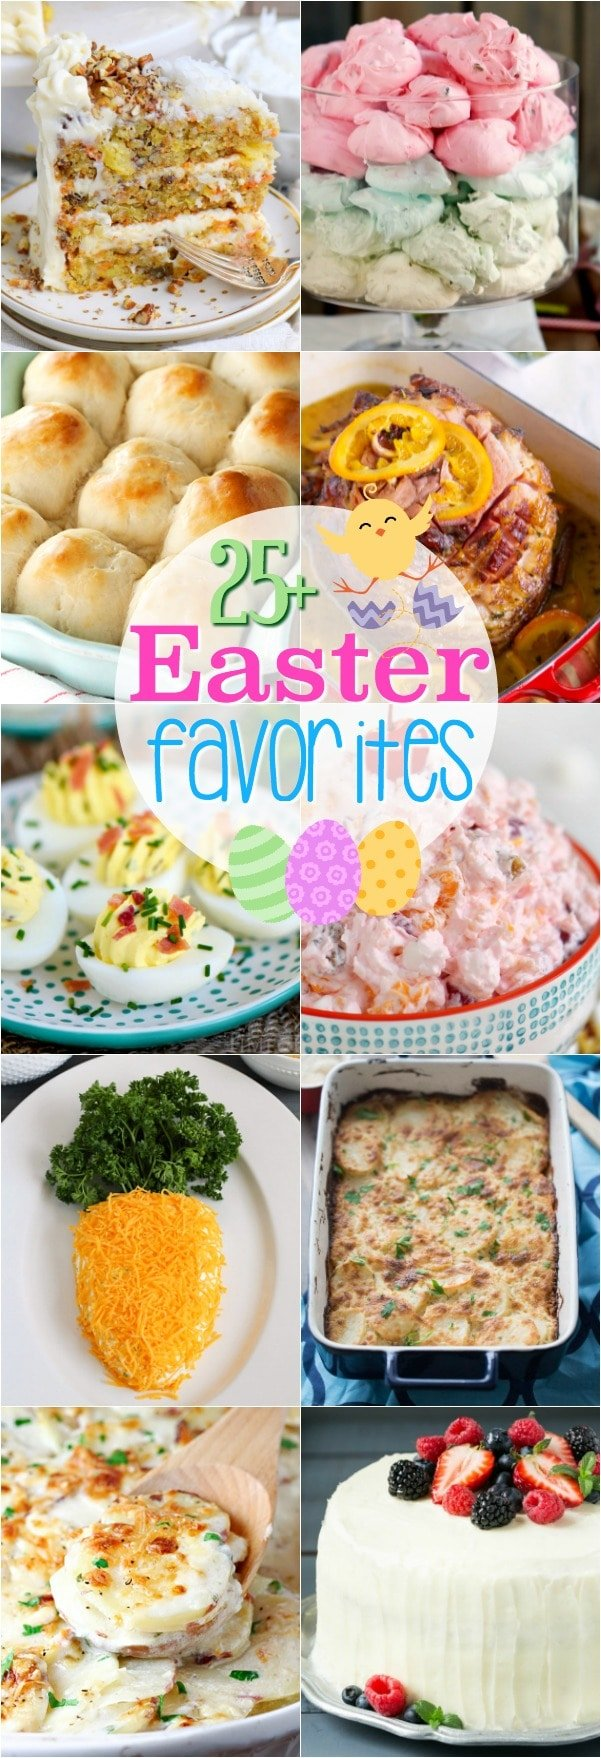 More than 25 Easter Favorites for your holiday menu! Sweets and savory recipes abound in this tasty Easter round-up! Add a few to your Easter celebration! // Mom On Timeout